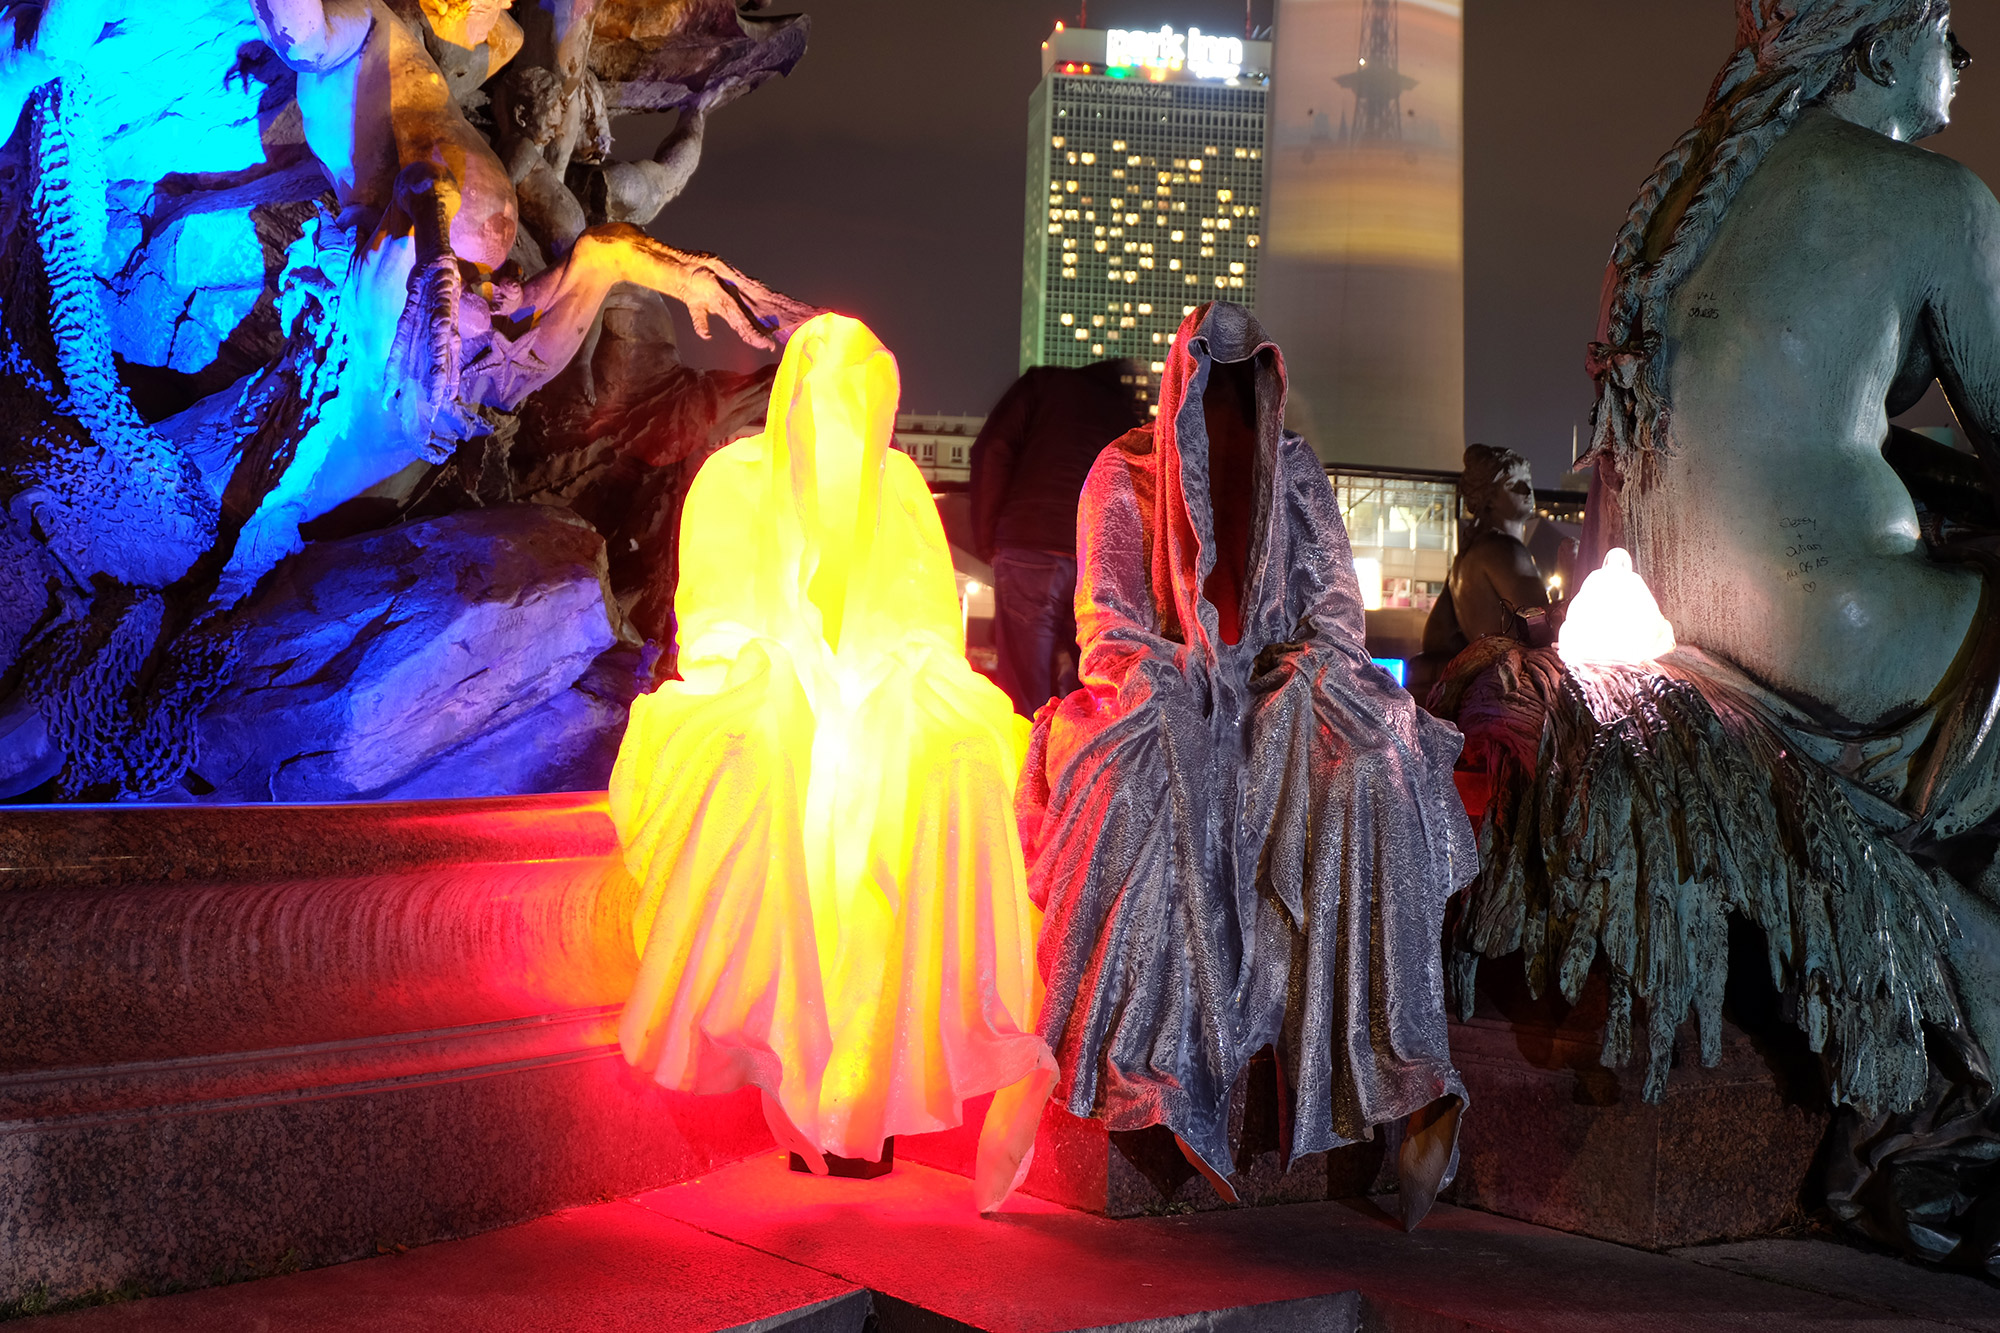 festival-of-lights-berlin-tv-tower-light-art-fine-arts-contemporary-art-guardians-of-time-manfred-kielnhofer-8722